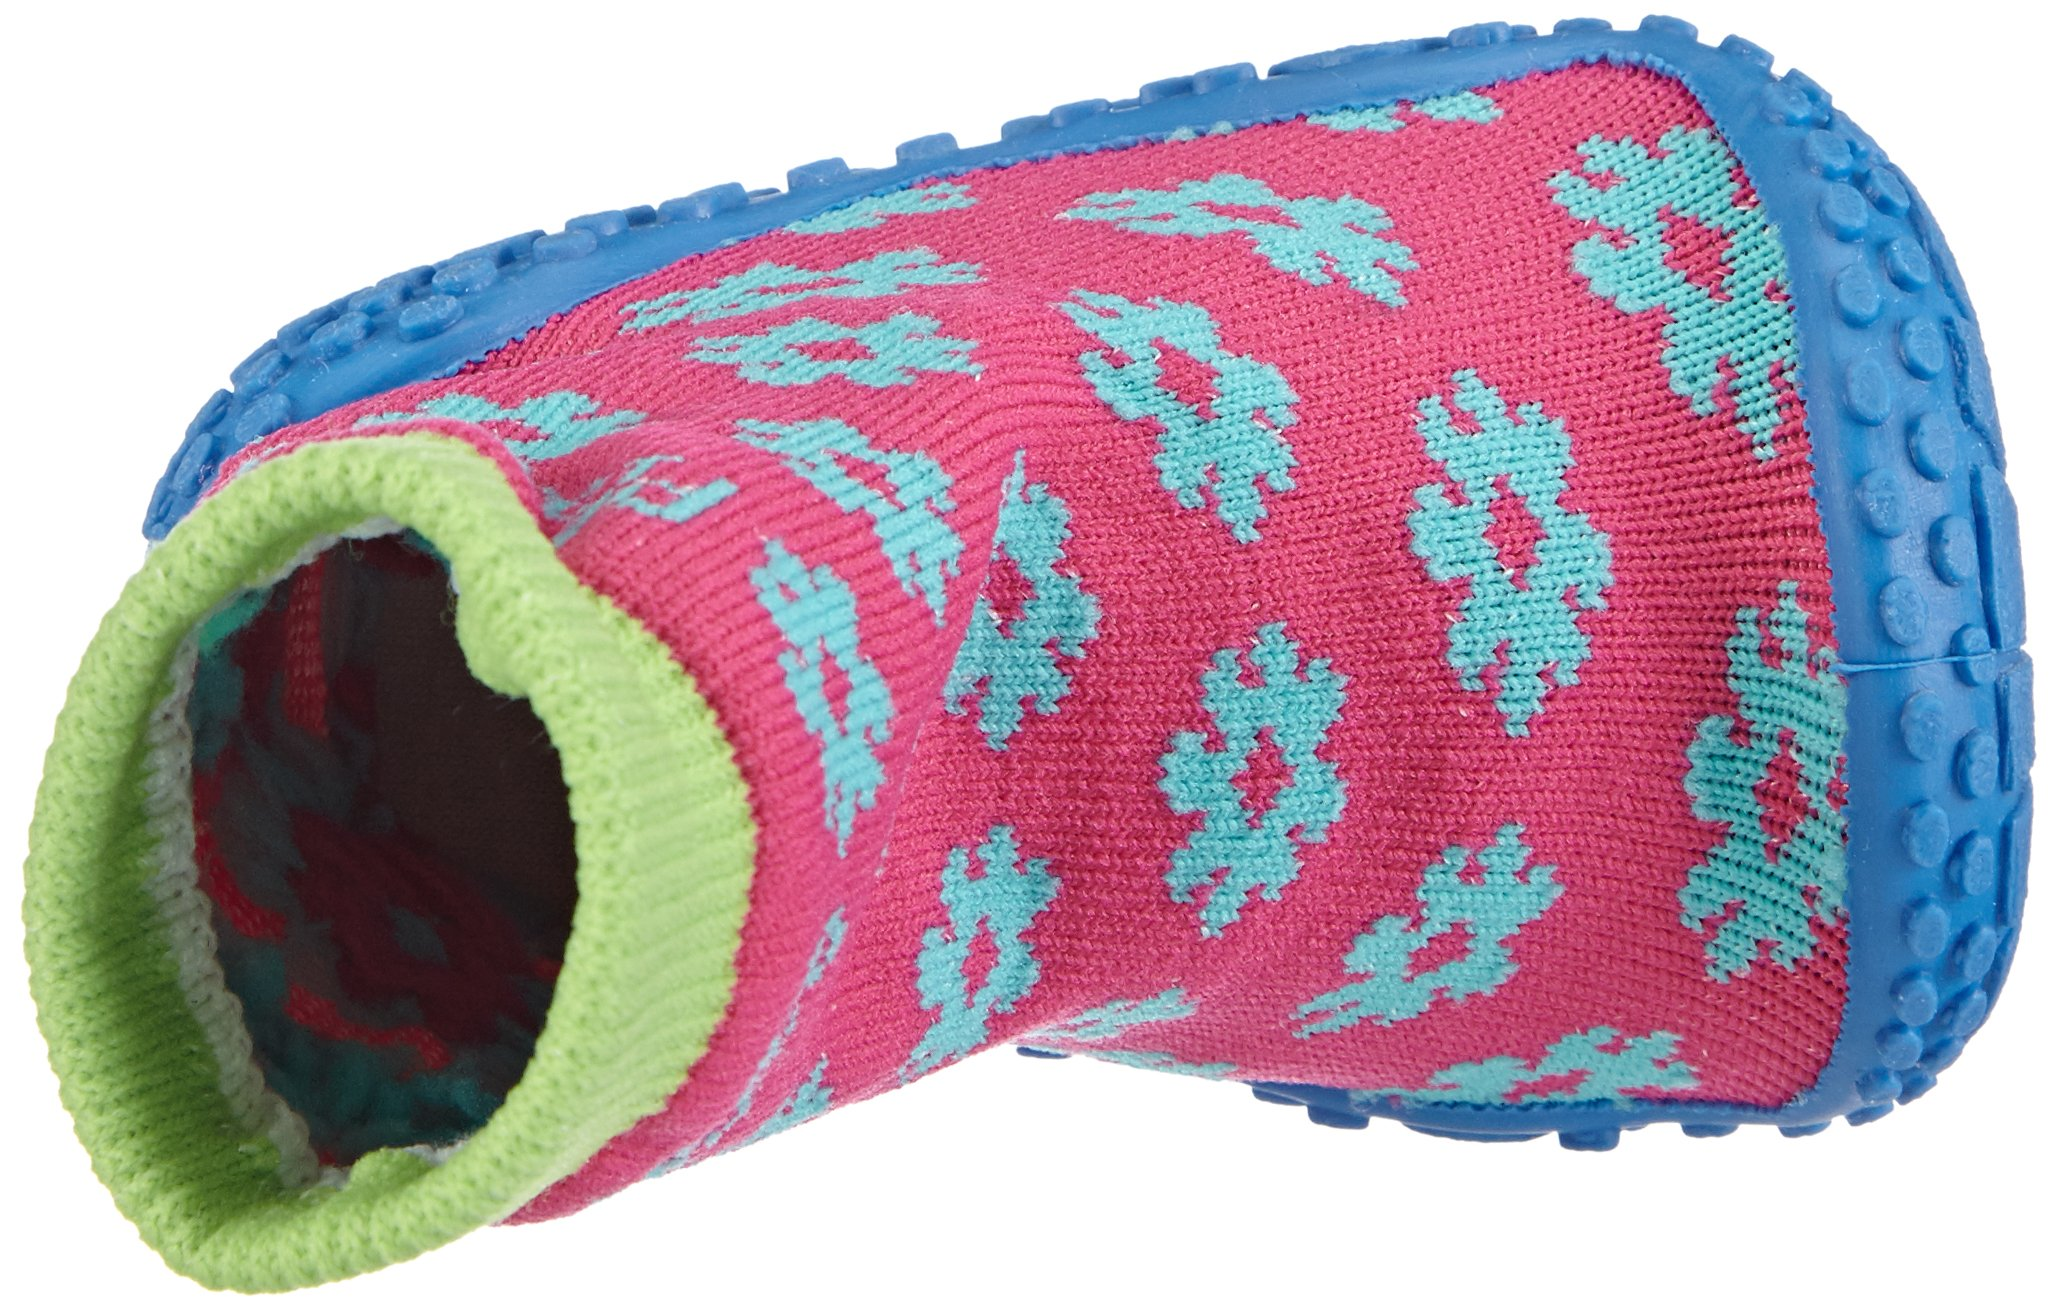 Playshoes Girls Flower Collection Rubber Aqua Swim/Beach Shoes (4.5 M US Toddler) by Playshoes (Image #7)